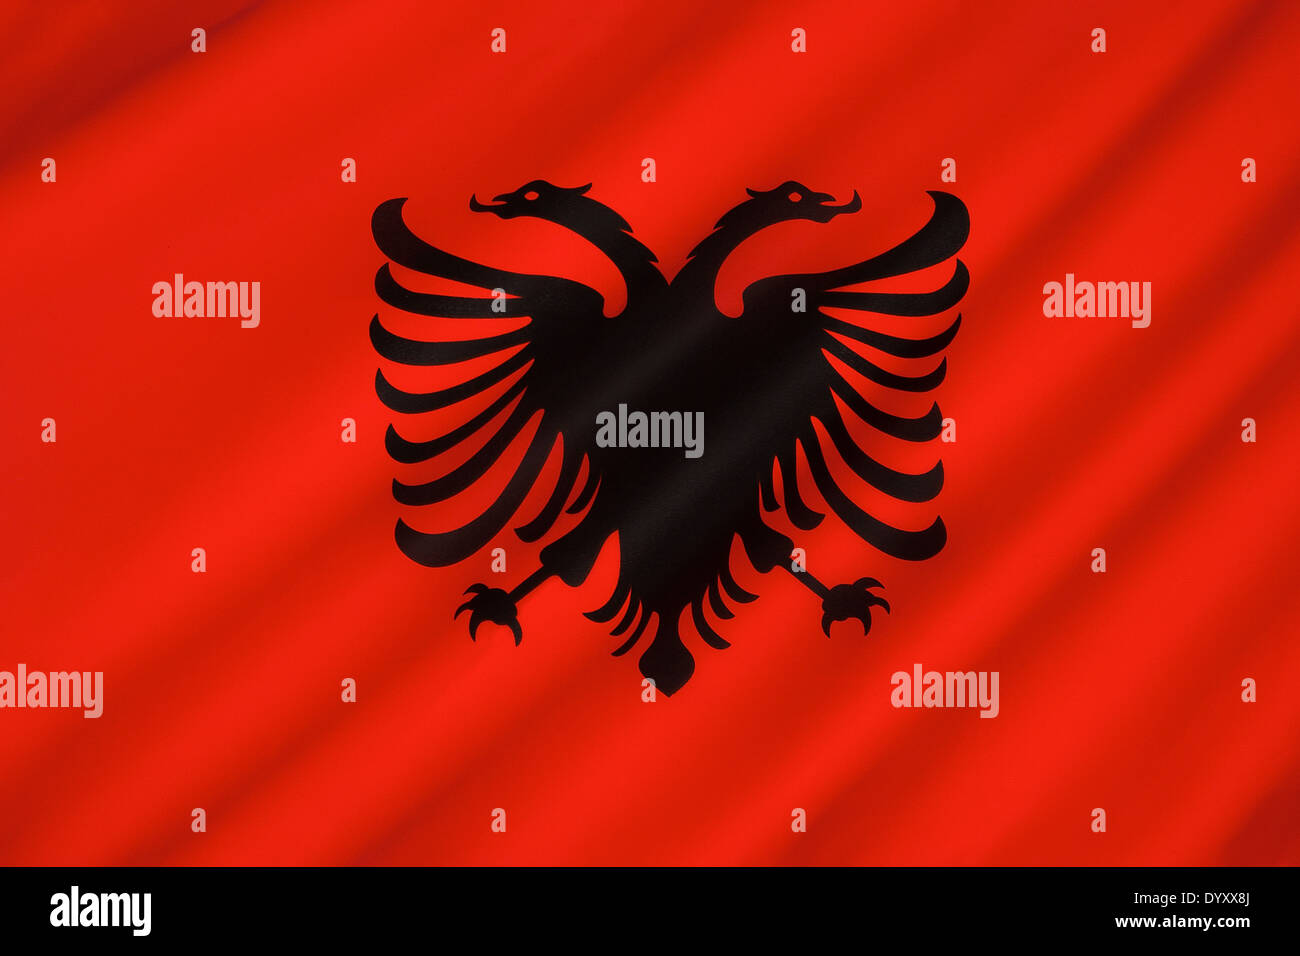 The Flag of Albania - Stock Image